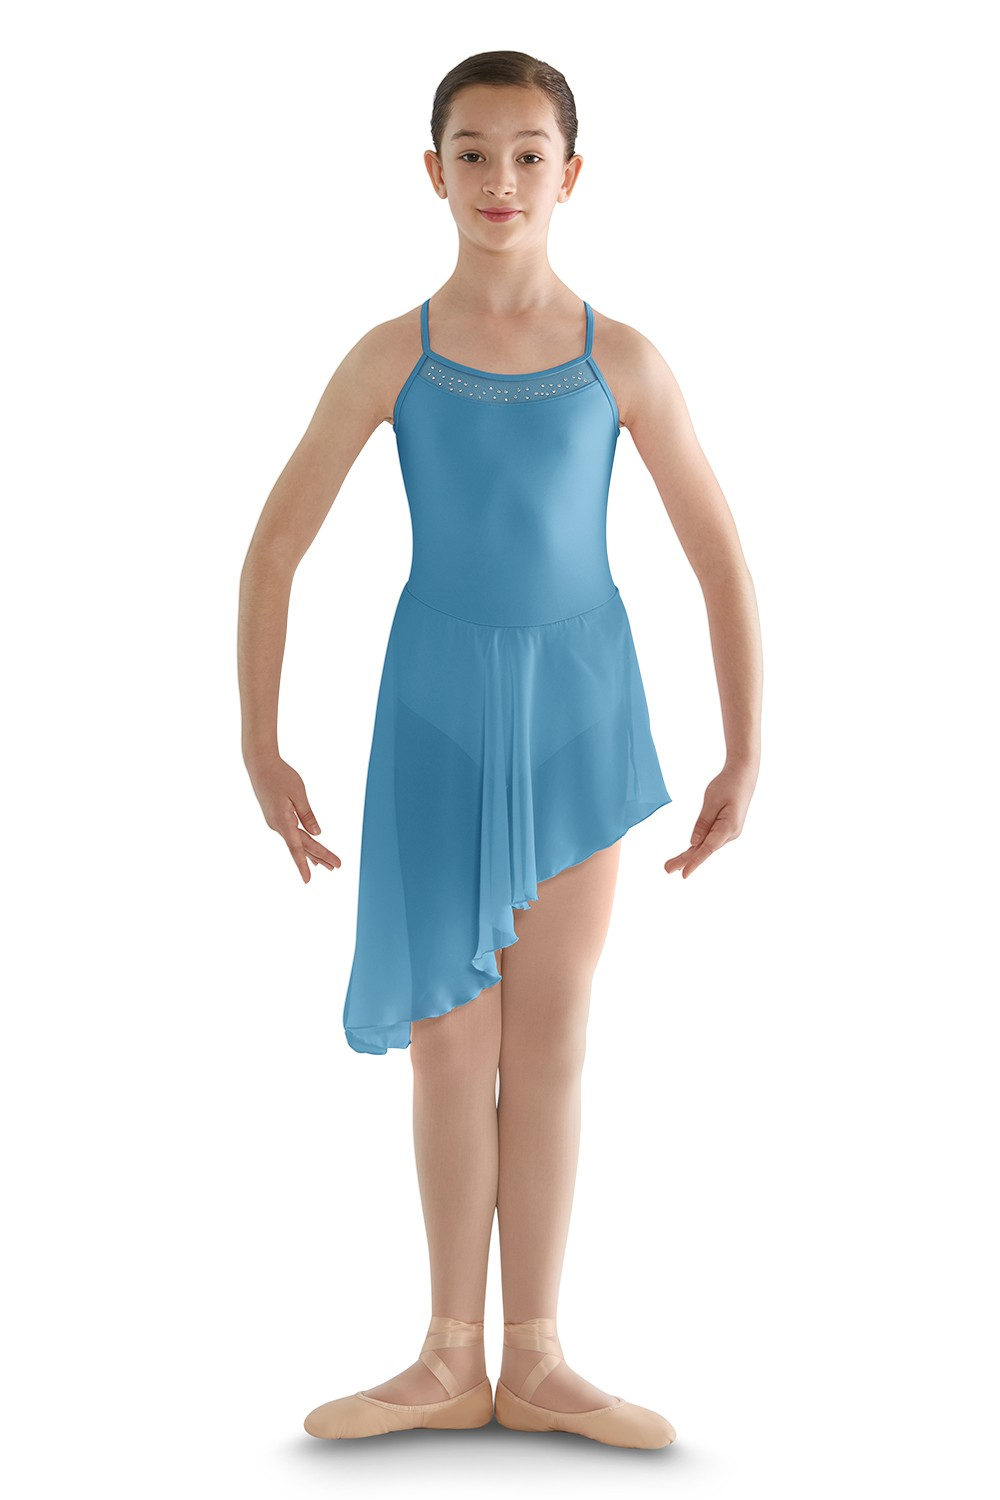 Melitaea Children's Dance Leotards